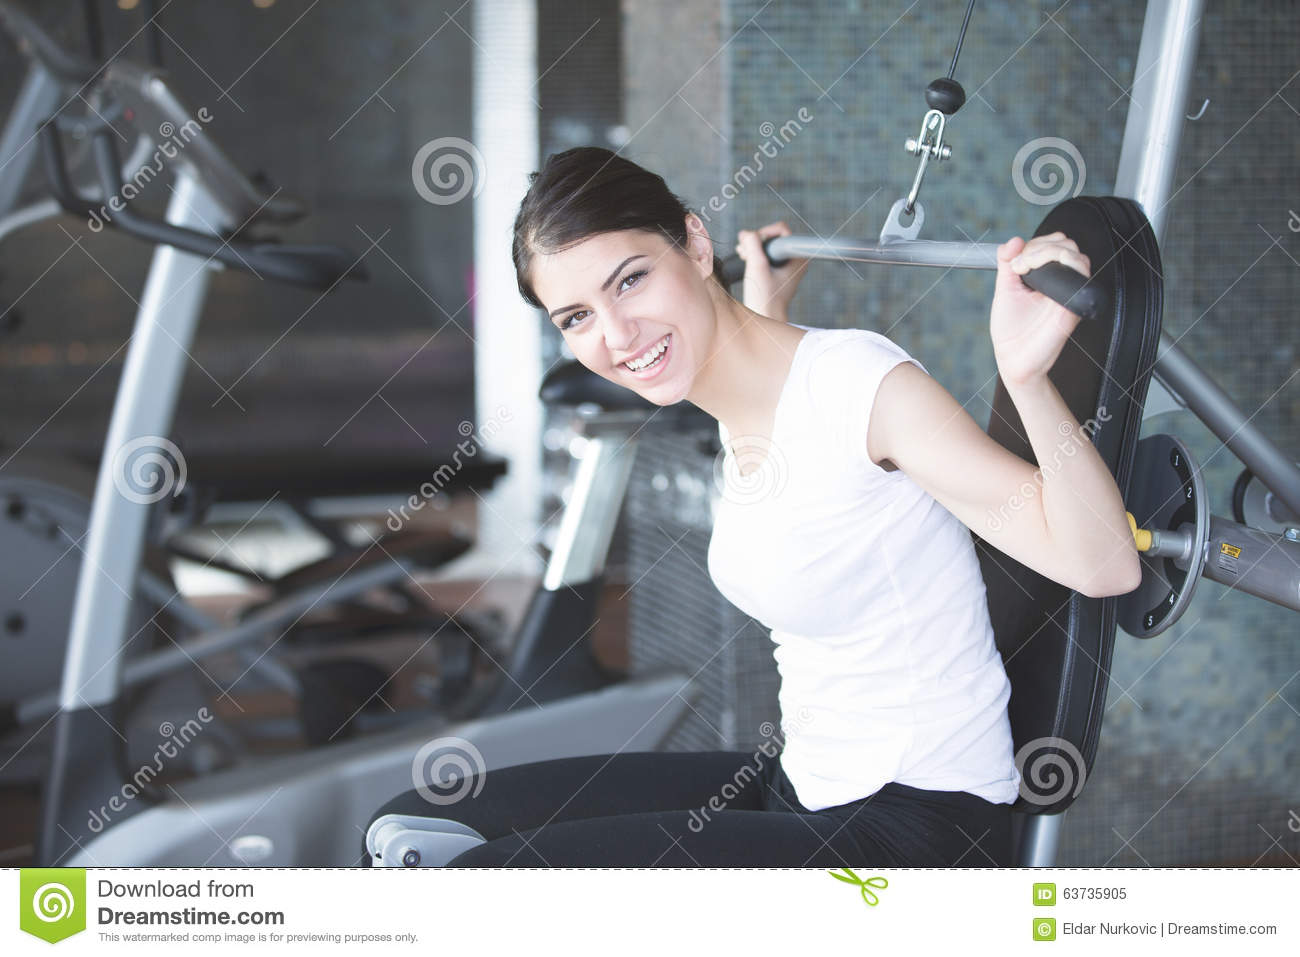 Woman weight training at gym.Exercising on pull down weight machine.Woman doing pull-ups exercising lifting dumbbells.